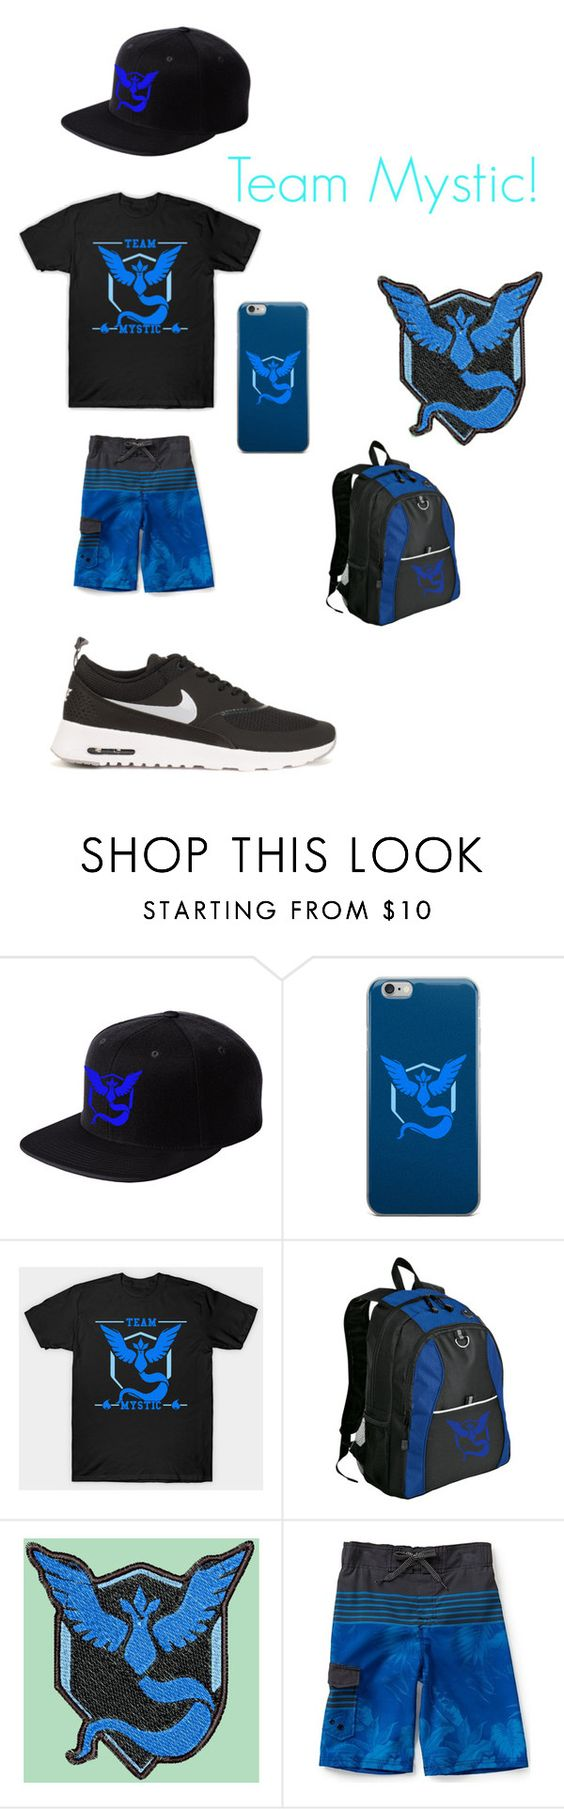 """Team Mystic!"" by oreo-galaxy ❤ liked on Polyvore featuring interior, interiors, interior design, home, home decor, interior decorating, Valor and NIKE"